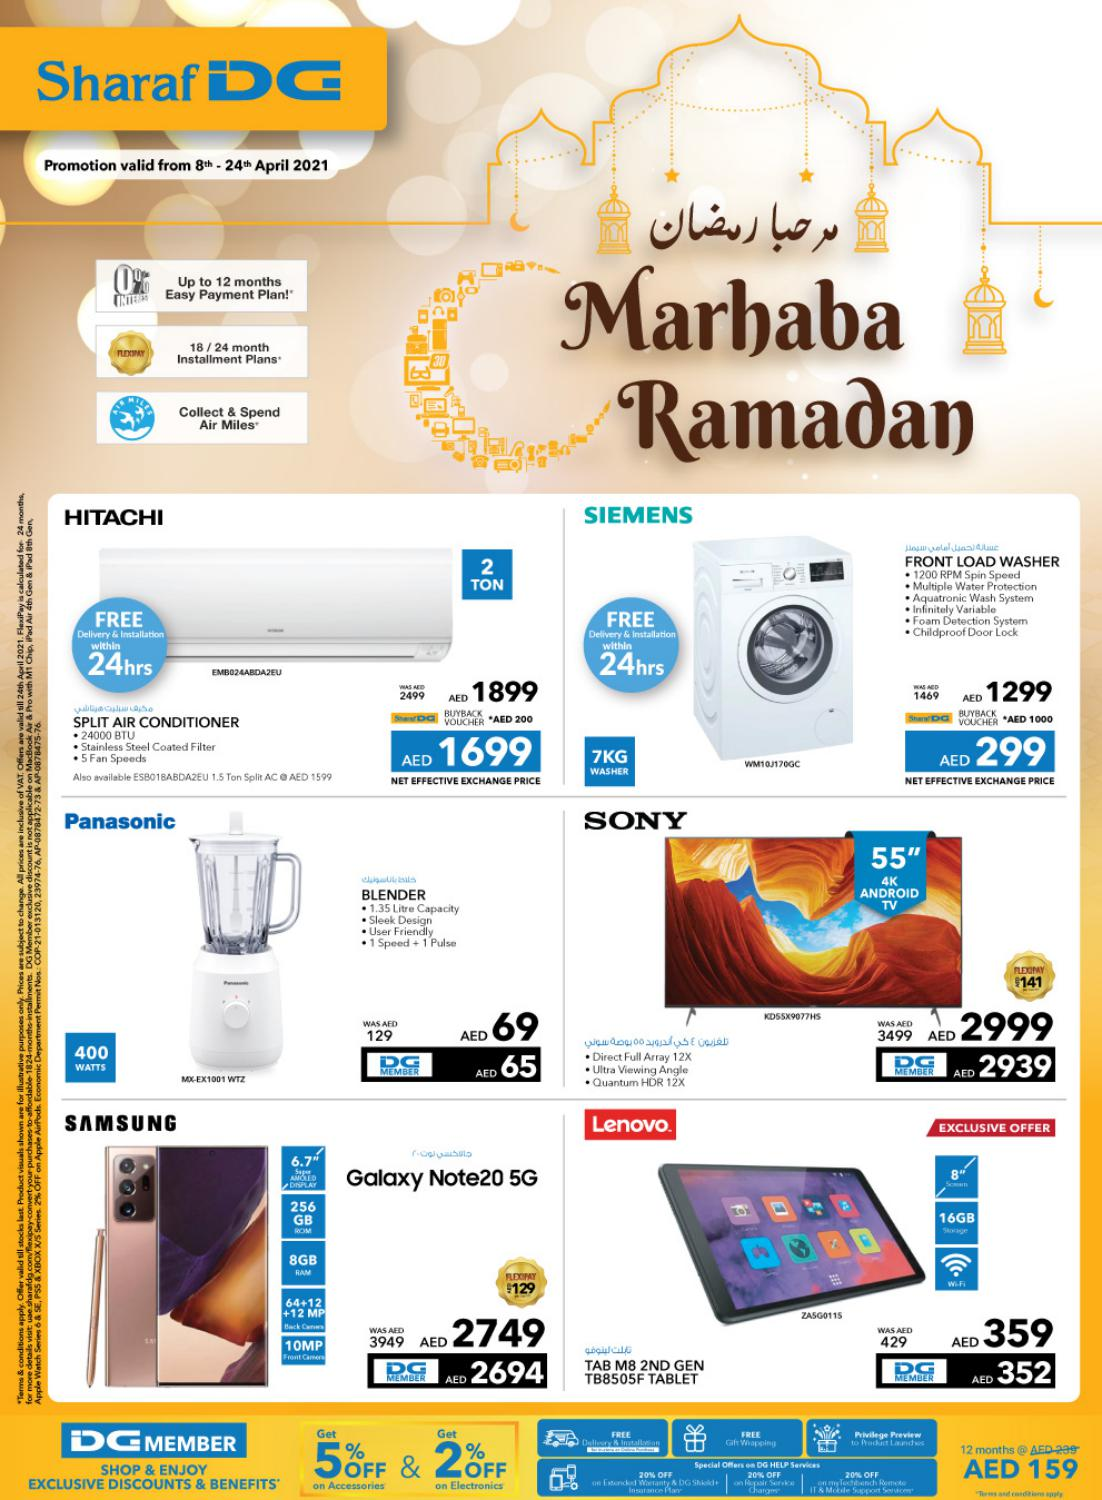 SHARAFDG-RAMADAN-OFFERS-V1-1